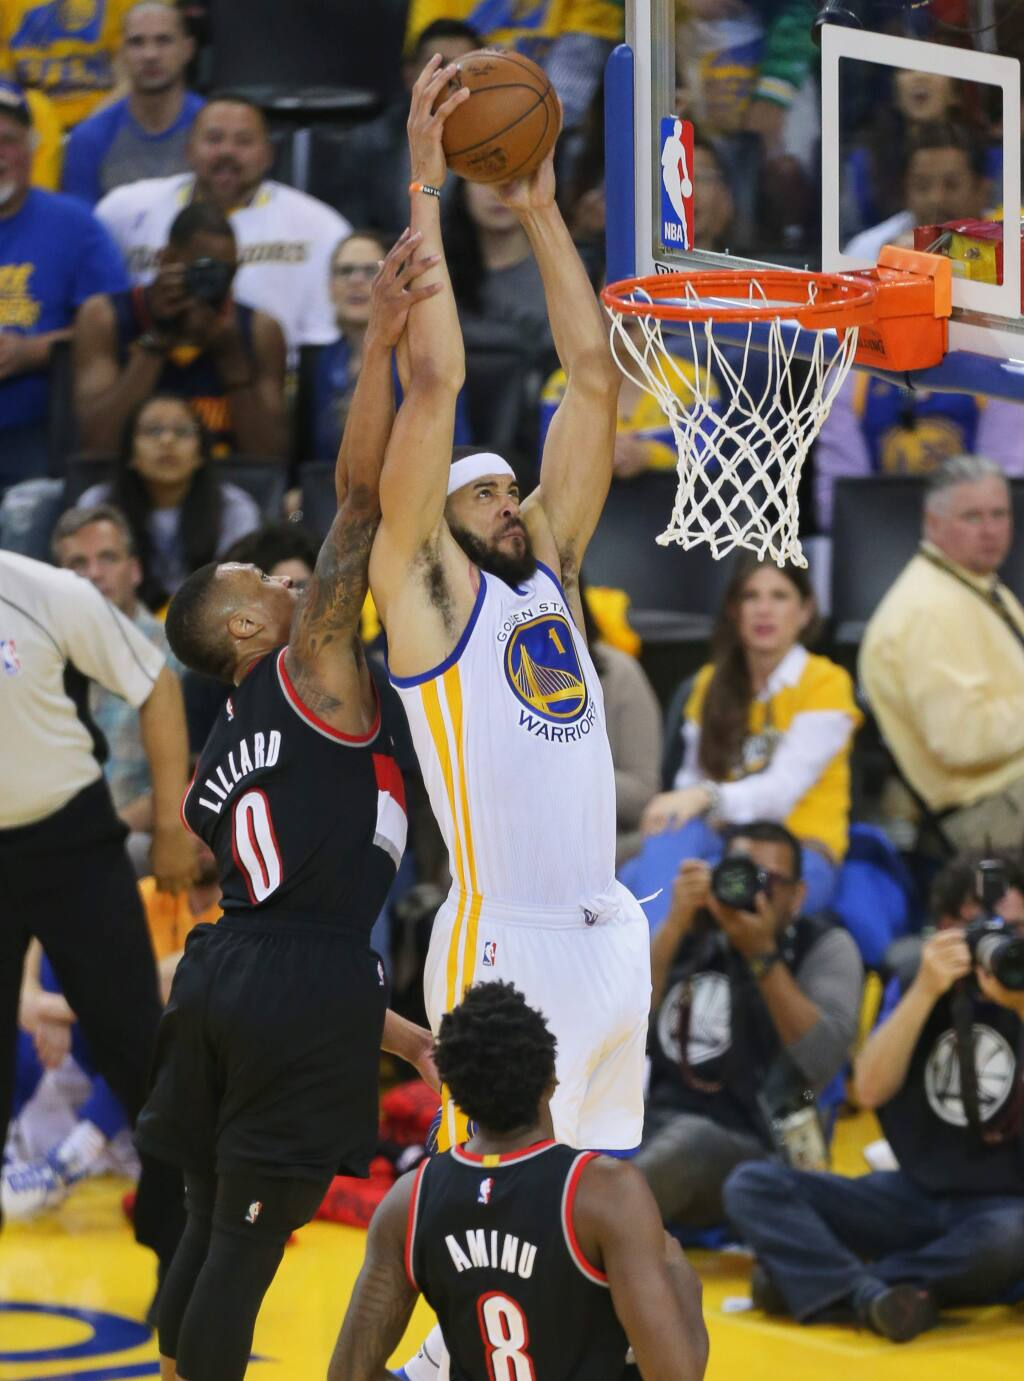 Golden State Warriors center JaVale McGee throws down a dunk over Portland Trailblazers guard Damian Lillard during Game 2 of the first round of NBA playoffs in Oakland on Wednesday, April 19, 2017. (Christopher Chung/ The Press Democrat)